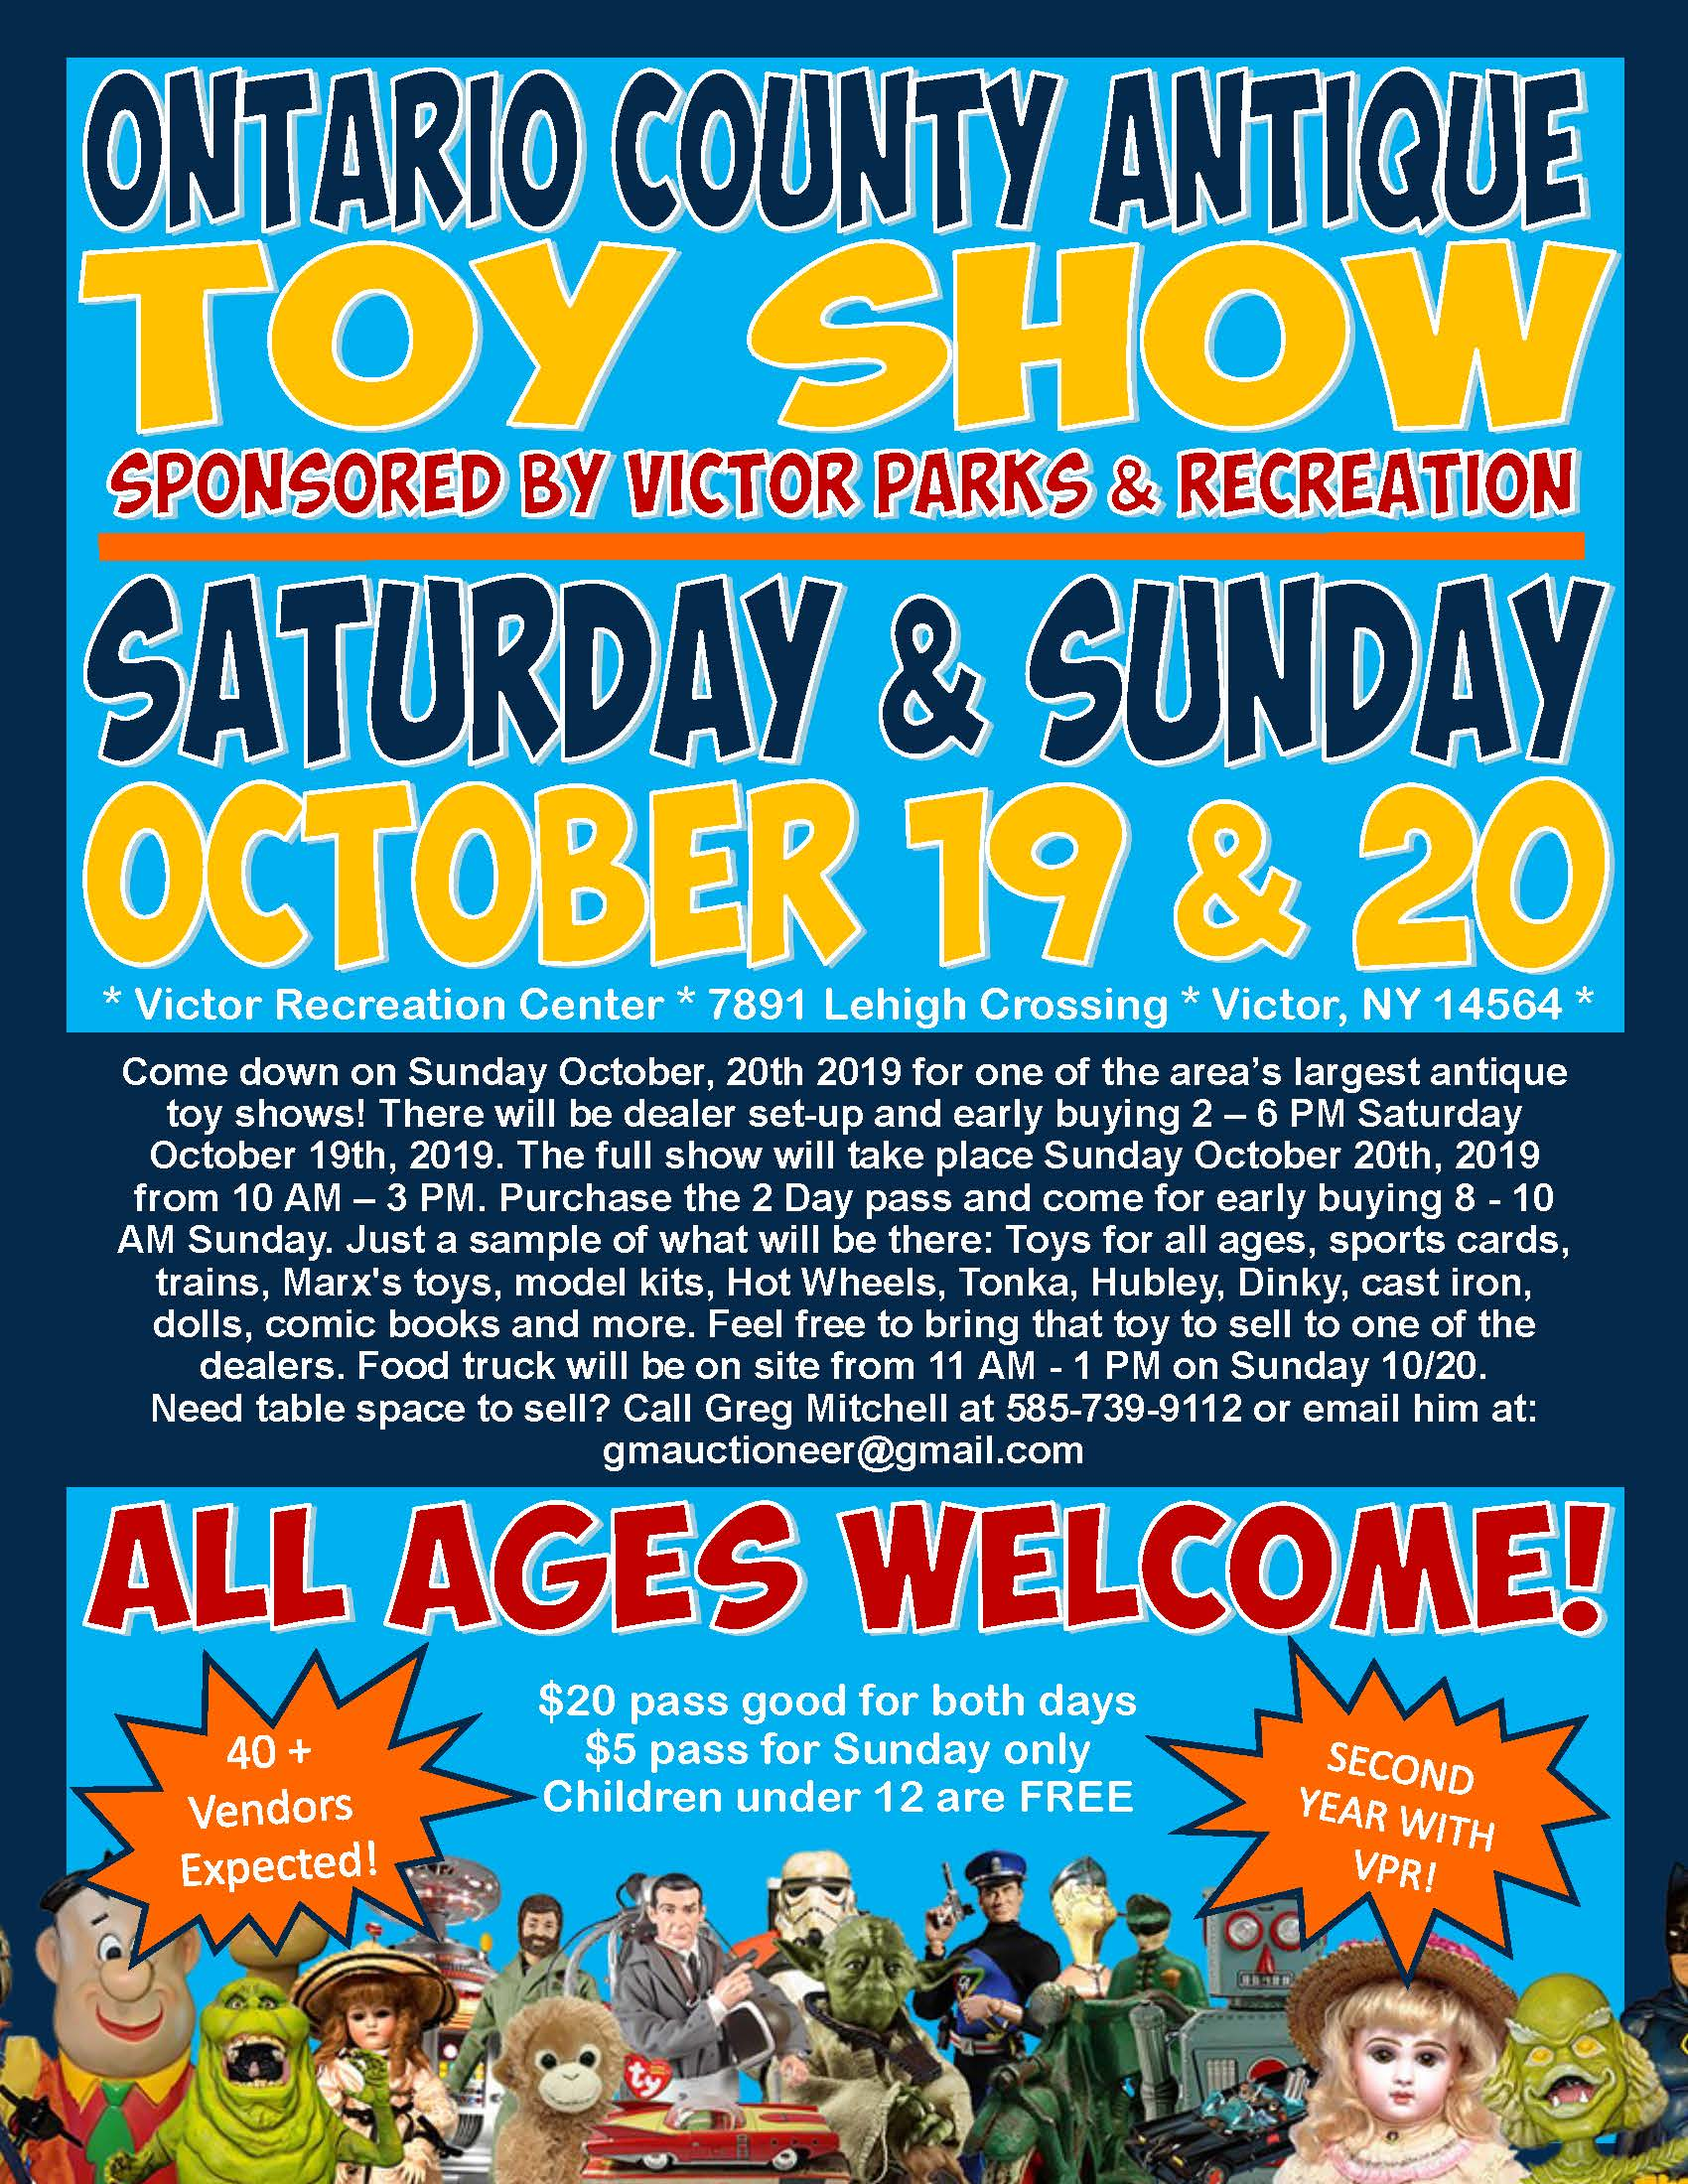 2019 Antique Toy Show Flyer (002)